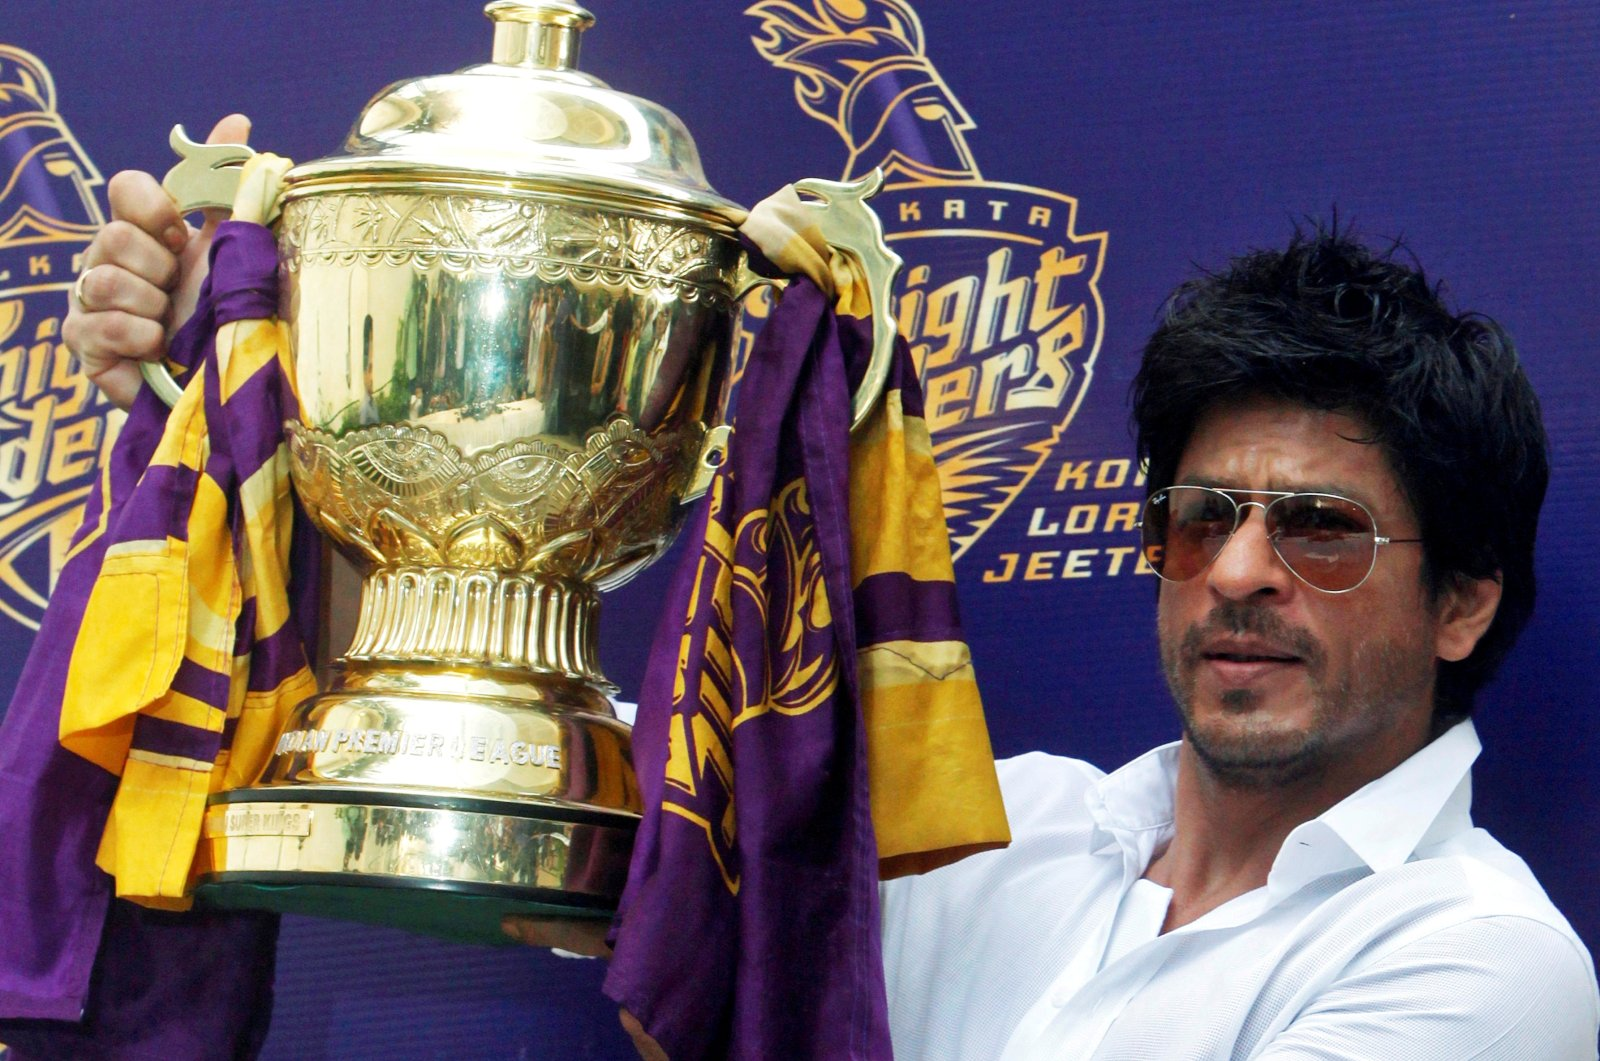 Bollywood actor Shah Rukh Khan displays the Indian Premier League (IPL) cricket trophy during a news conference at his residence in Mumbai, India, May 30, 2012. (Reuters)